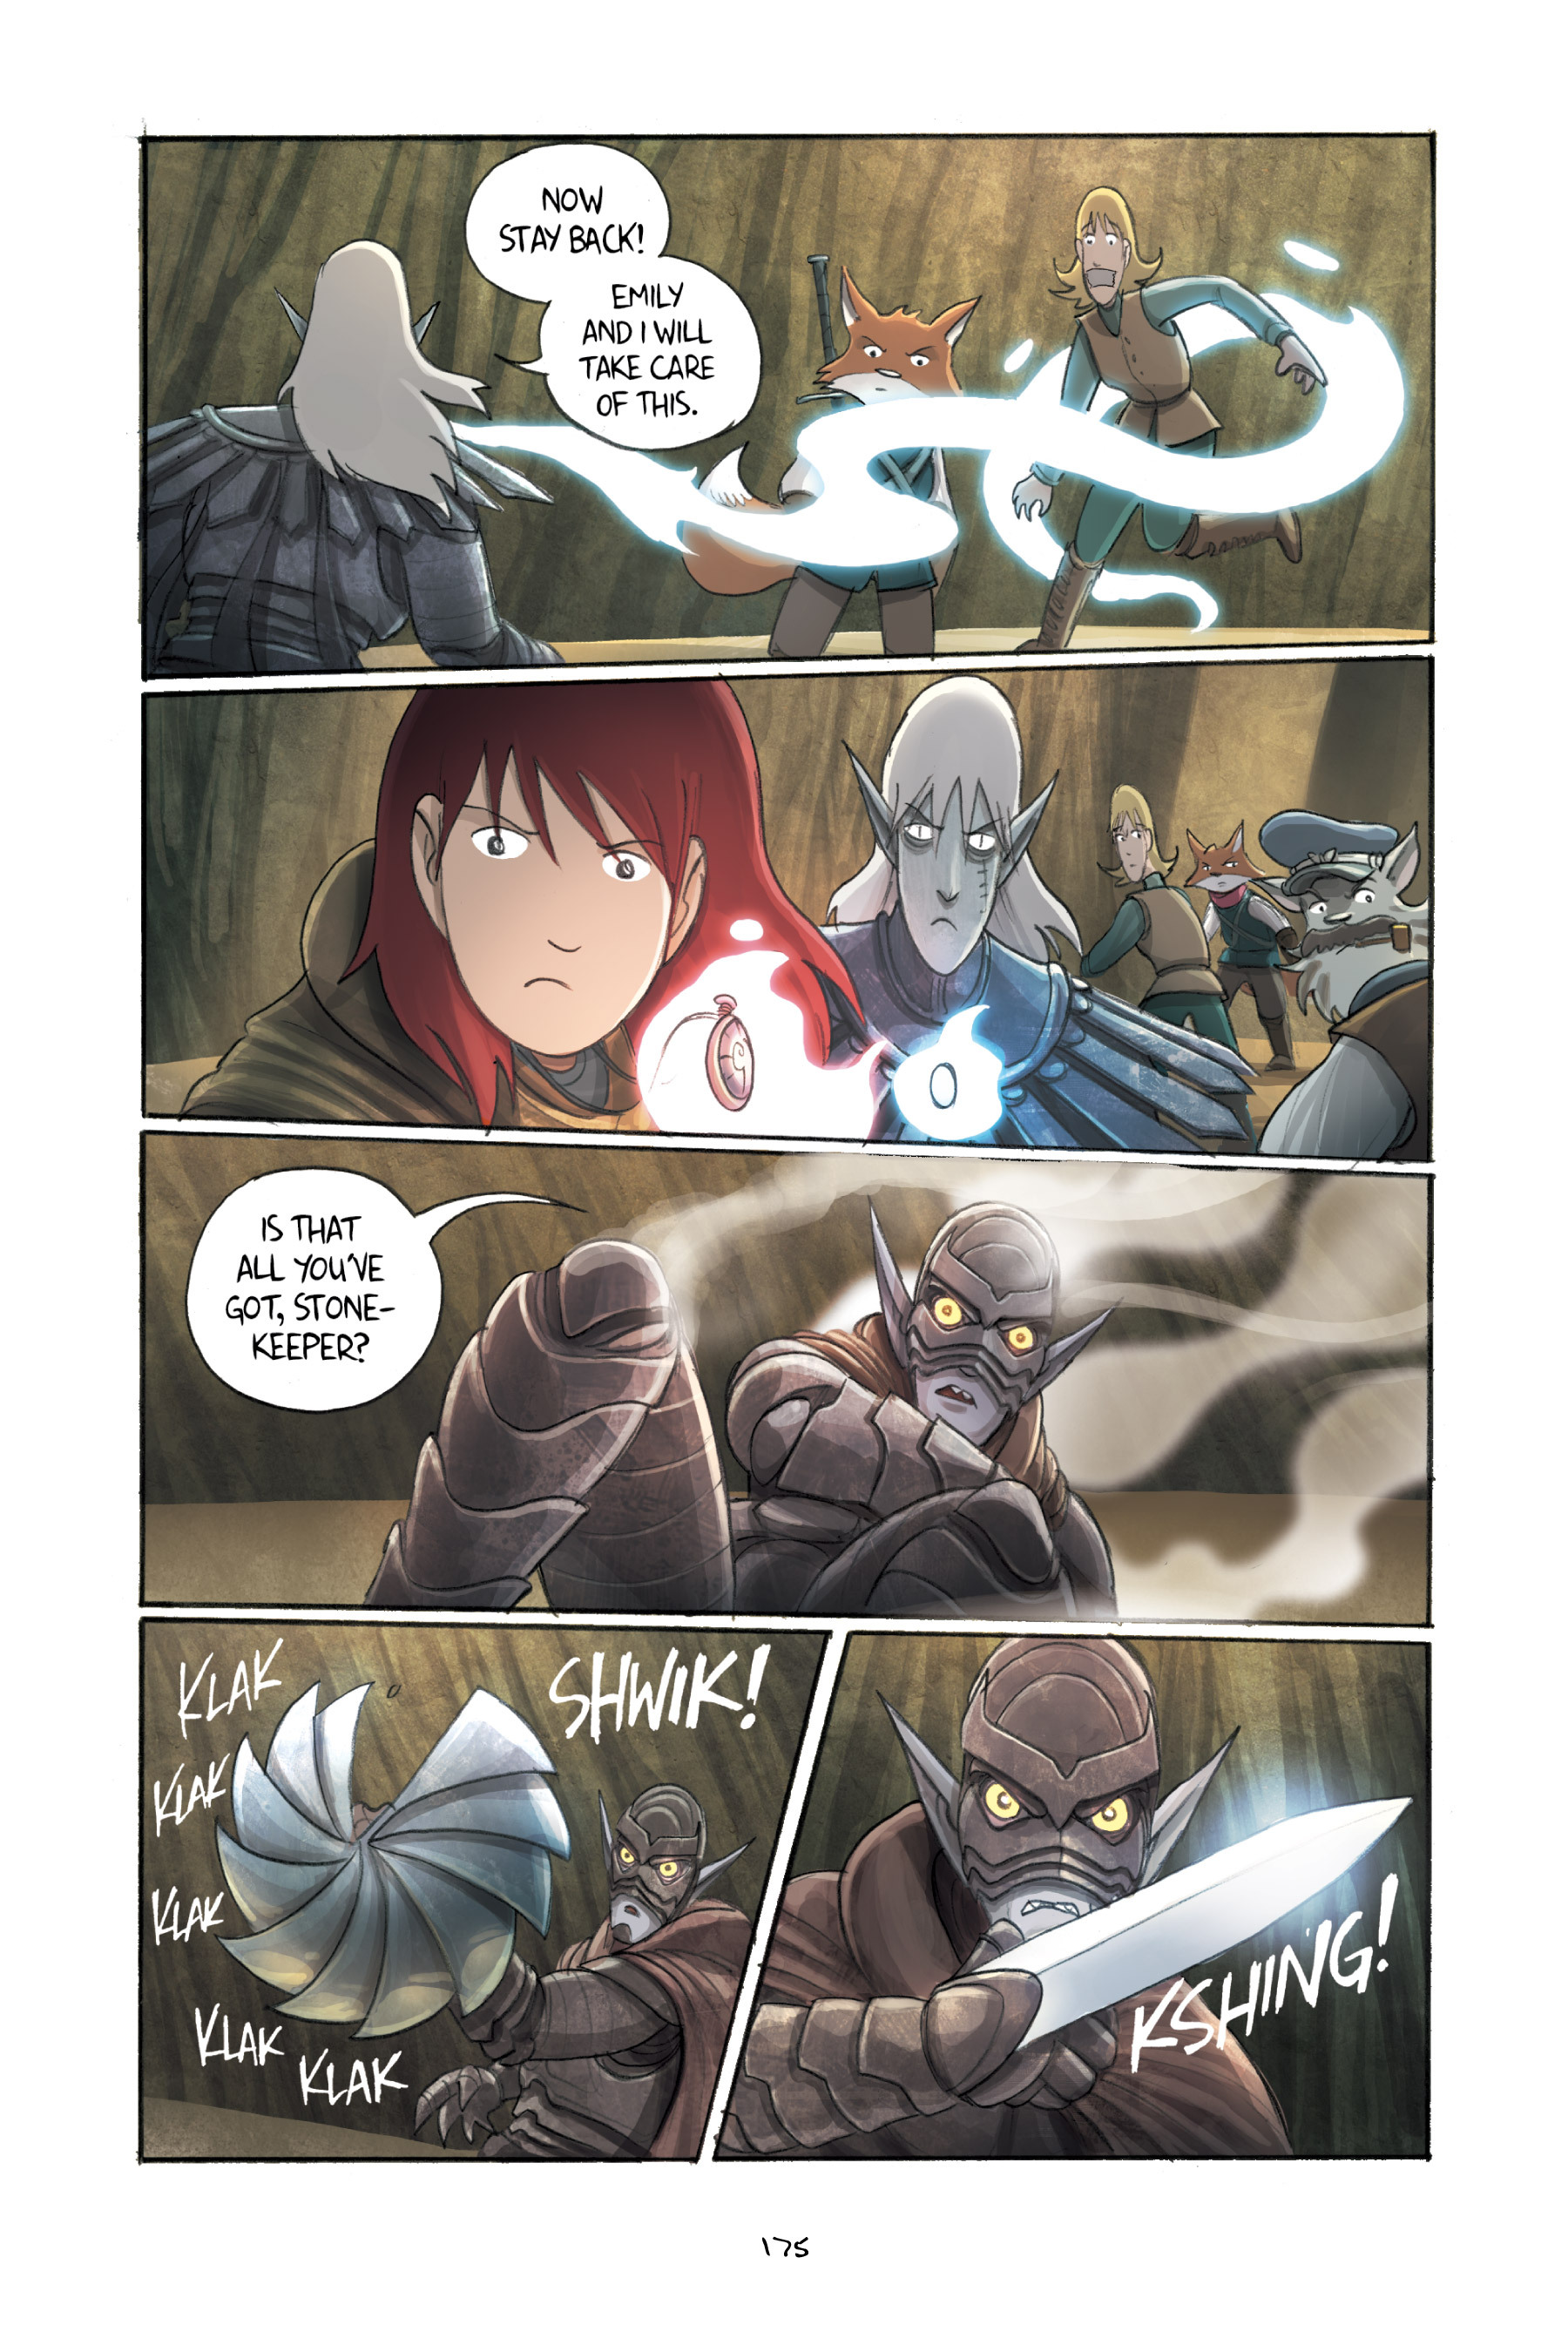 Read online Amulet comic -  Issue #3 - 171